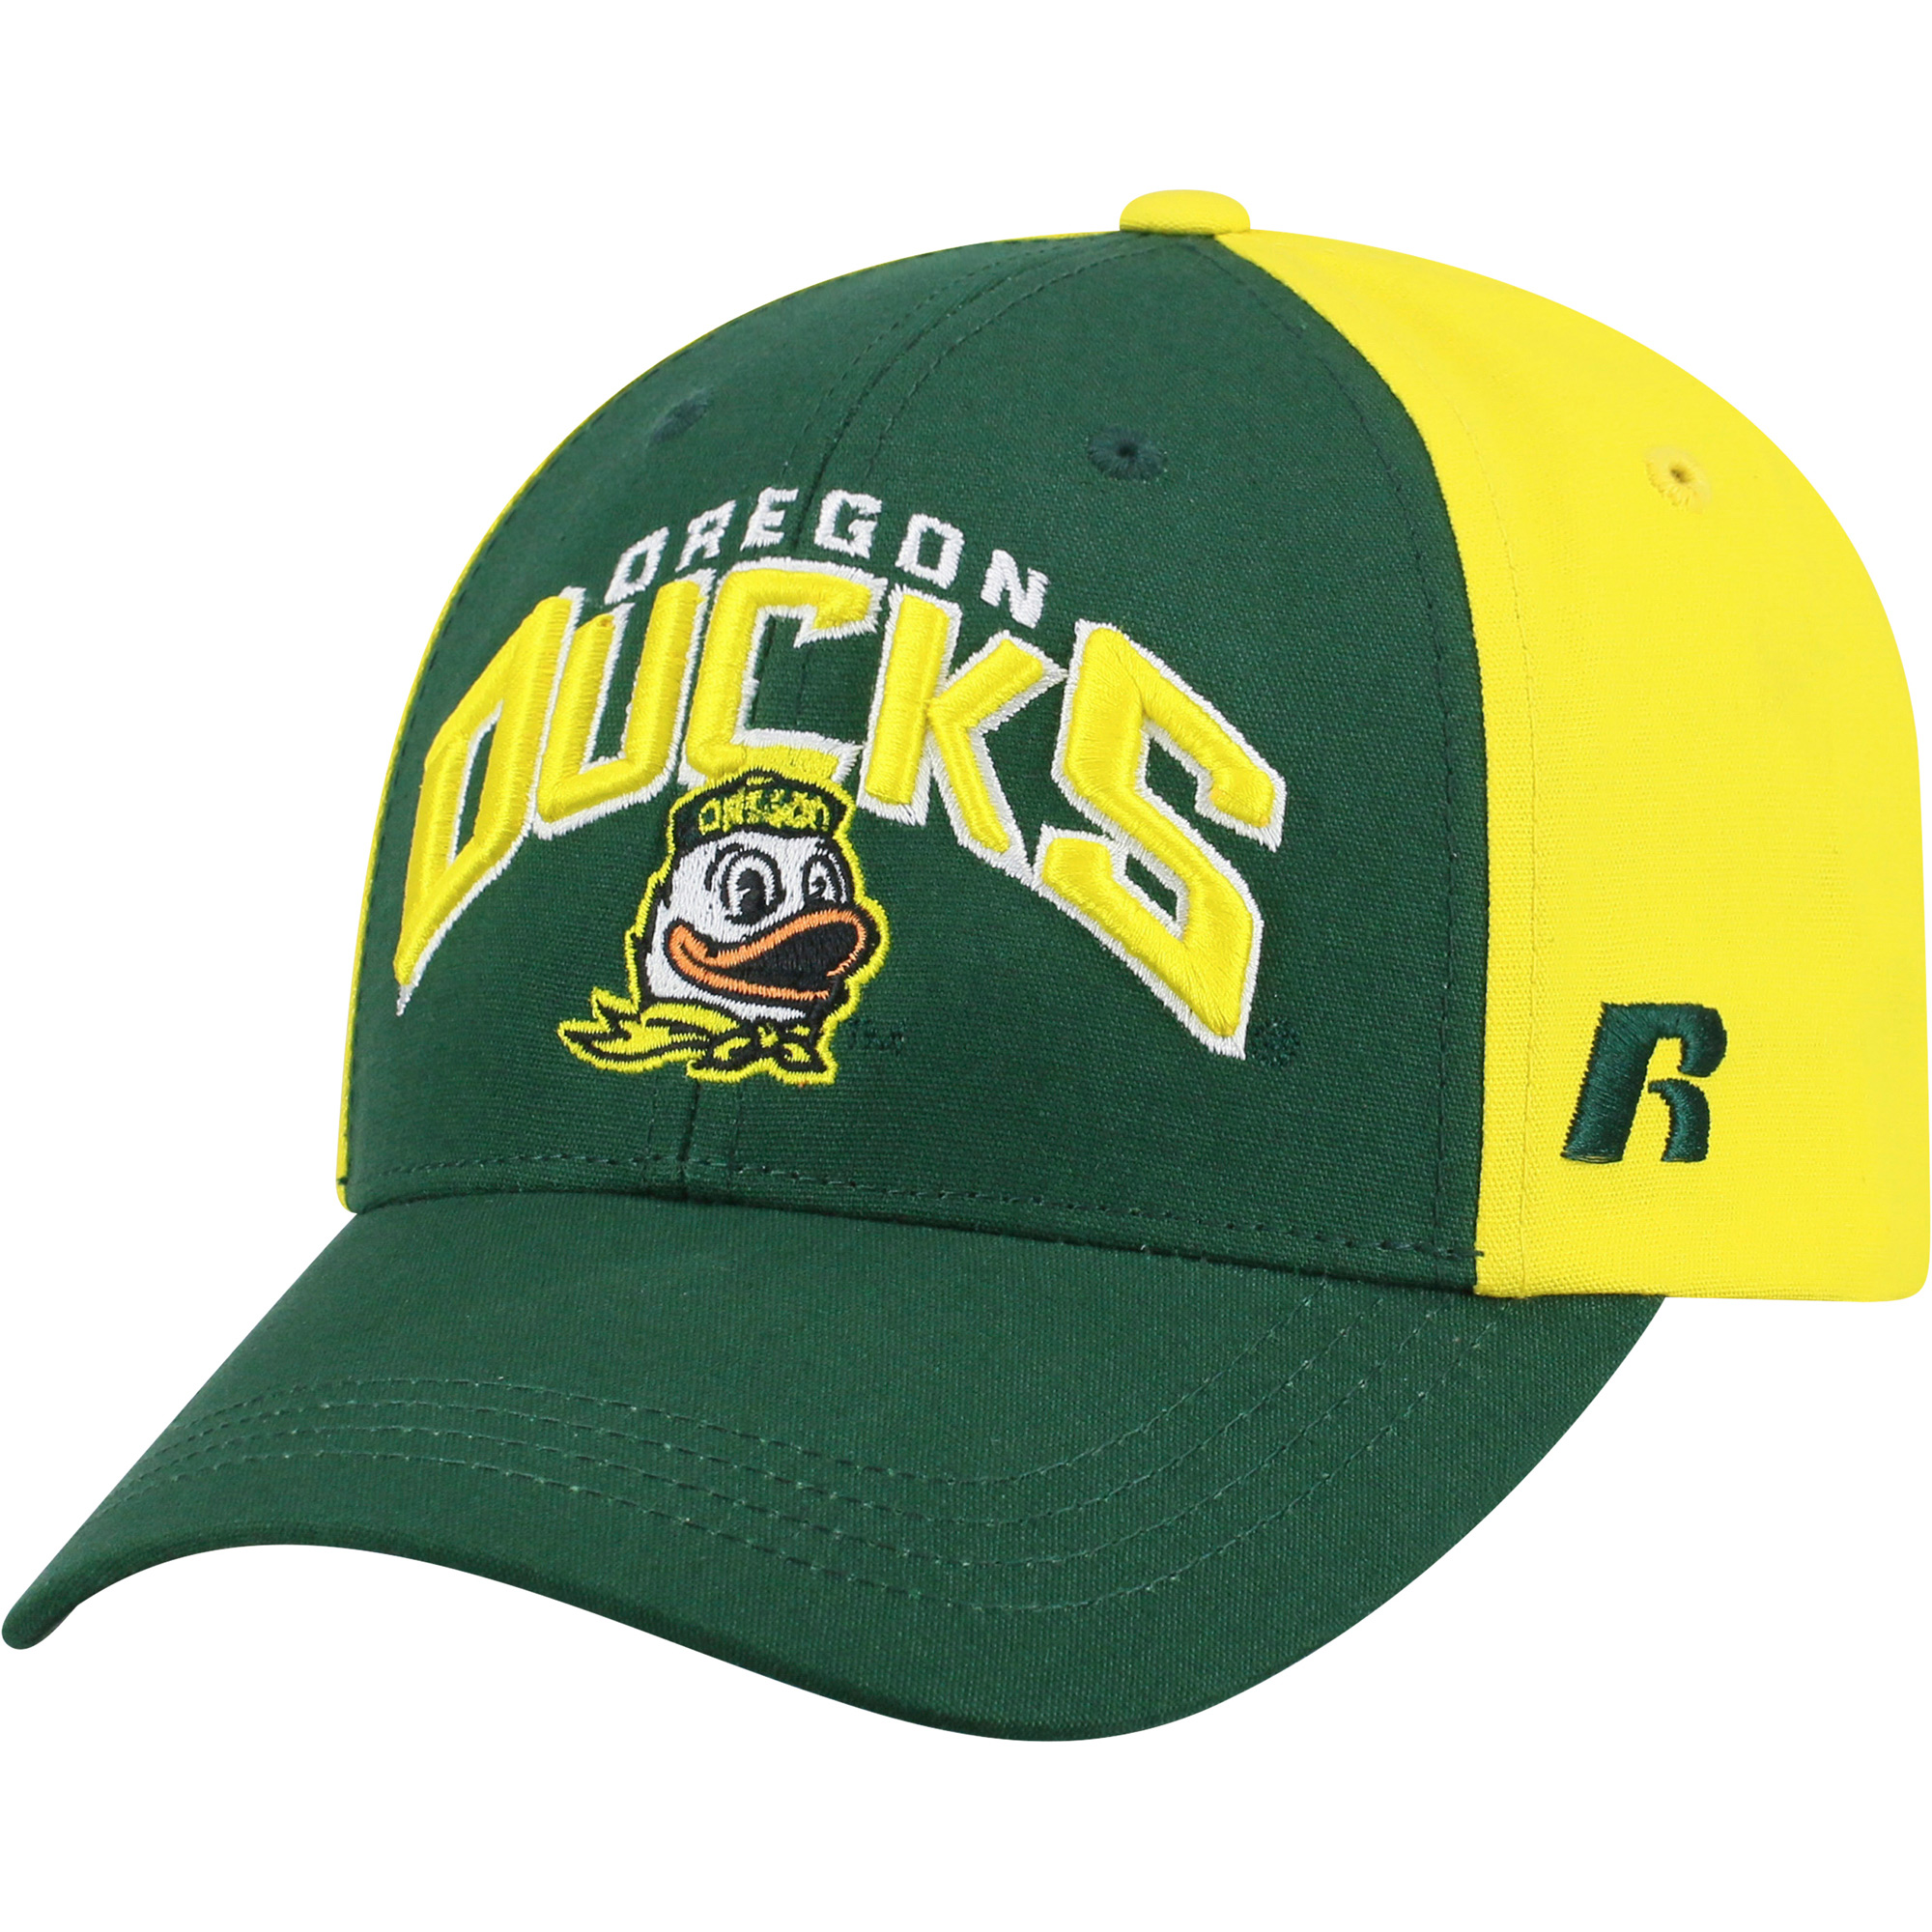 Men's Green/Yellow Oregon Ducks Tastic Adjustable Hat - OSFA